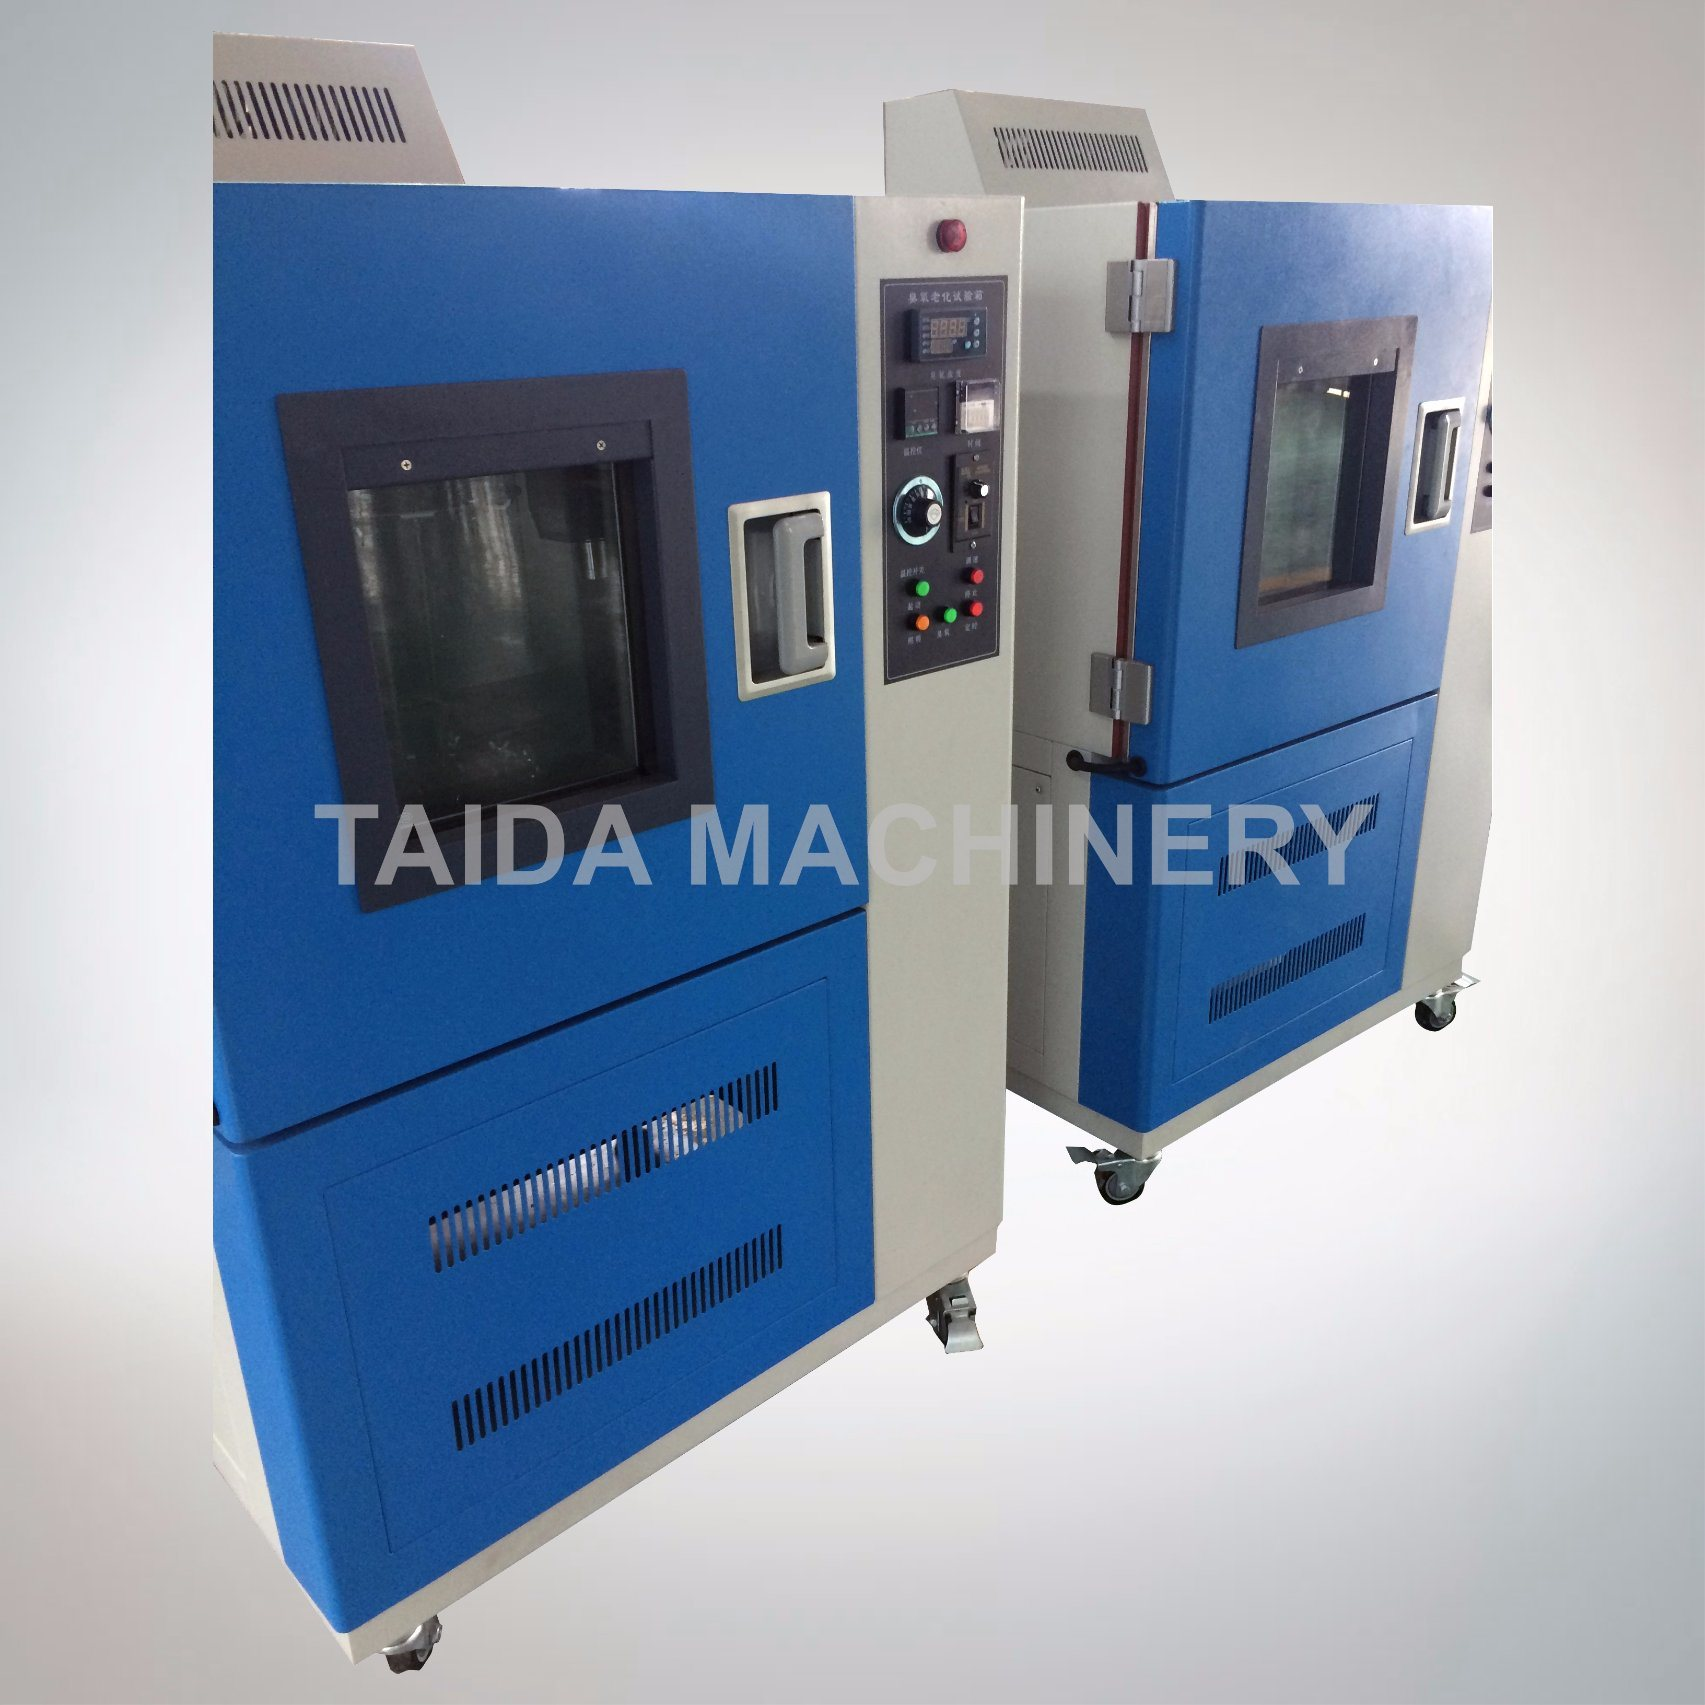 Universal Tensile Tester Testing Machines Laboratory Equipments Instruments Plant Factory Manufacturers